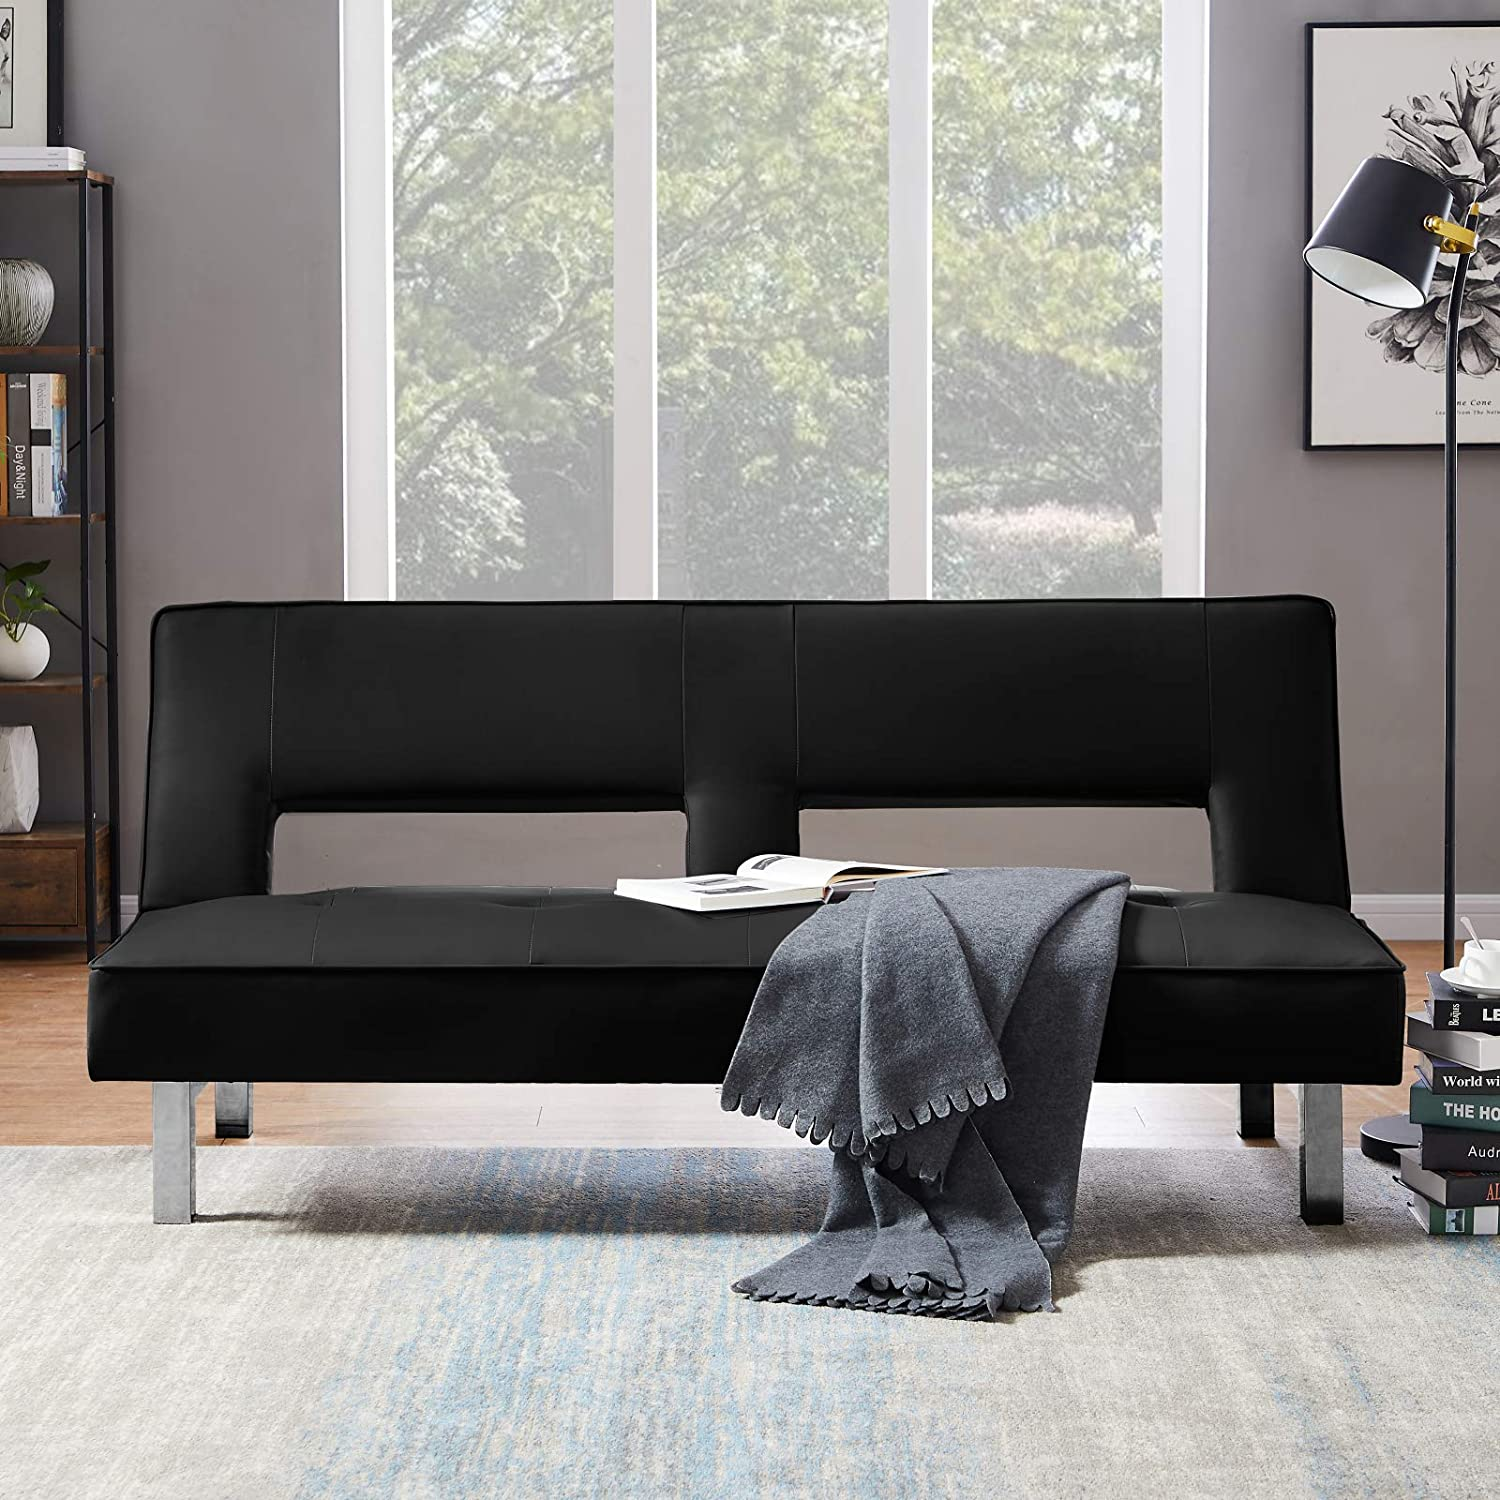 service Modern PU Sofa High quality new Bed Couch Convertible with Adjustab Sleeper